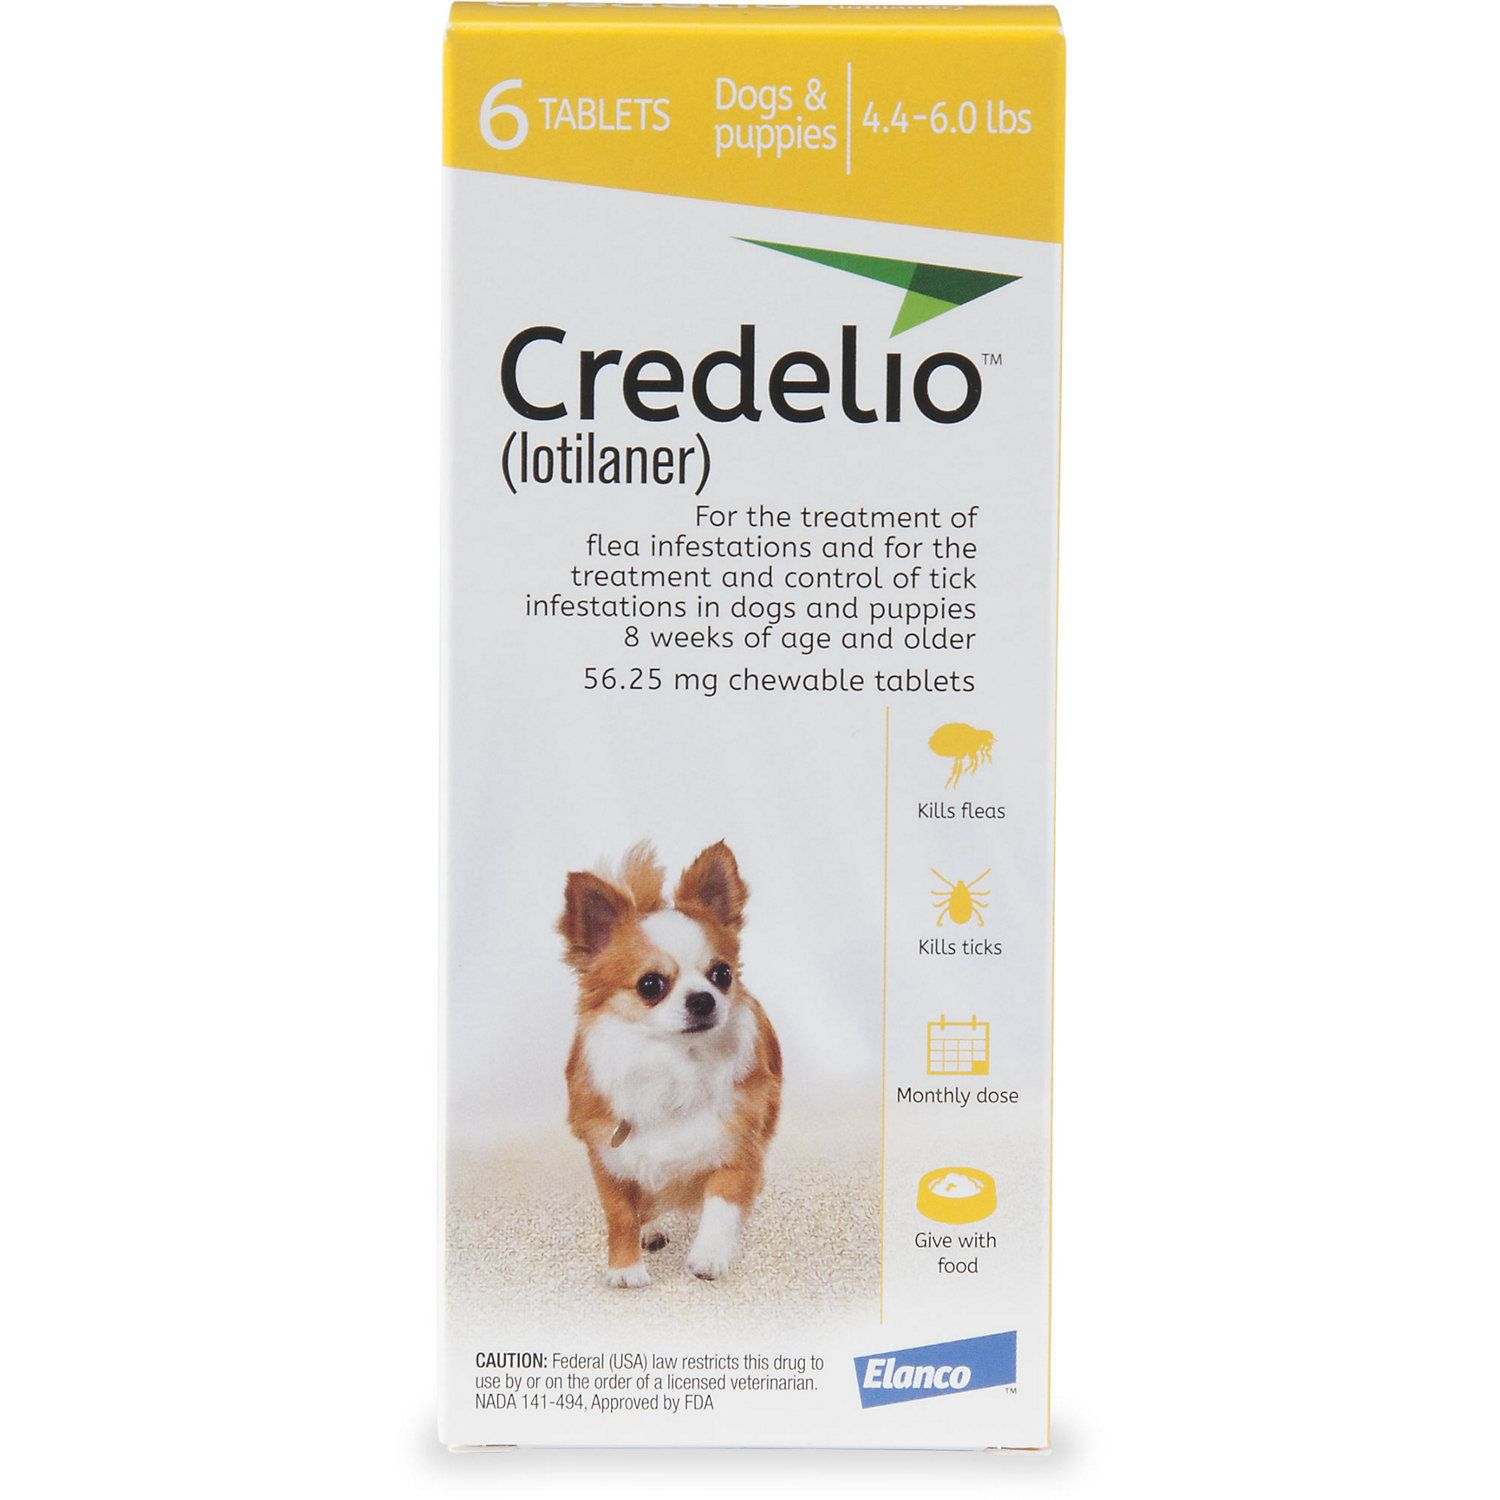 Credelio Chewable Tablets For Dogs 4 4 6 Lbs Yellow 6 Pack Petco Brown Dog Tick Dogs American Dog